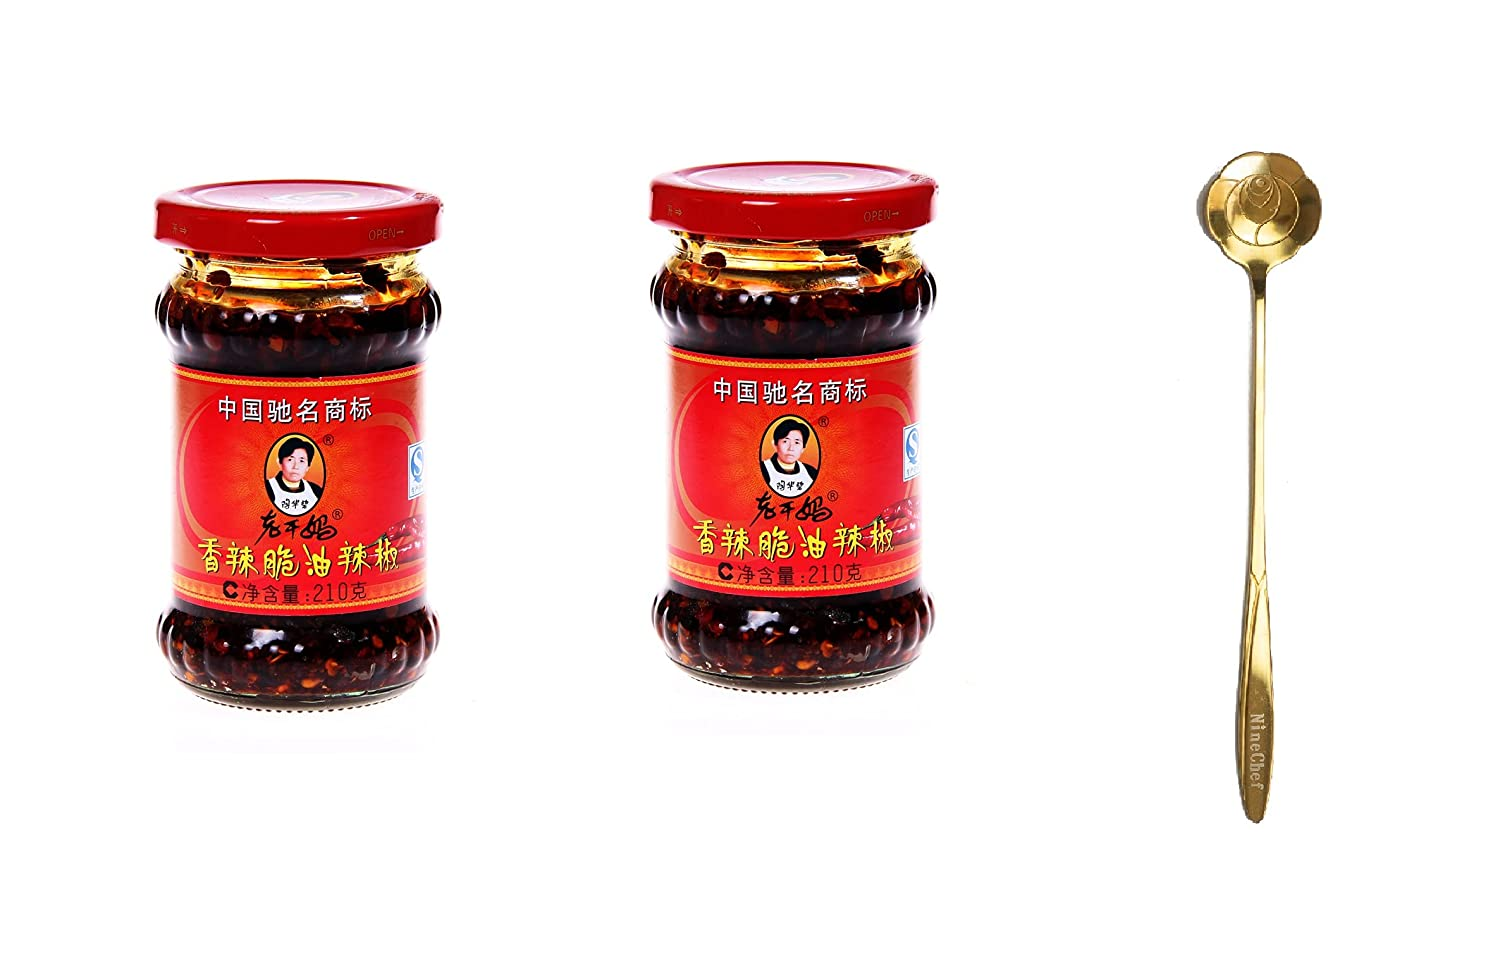 Lao Gan It is very popular Ma Spicy Chili Max 74% OFF Crisp Chinese Sauce w Oil Hot